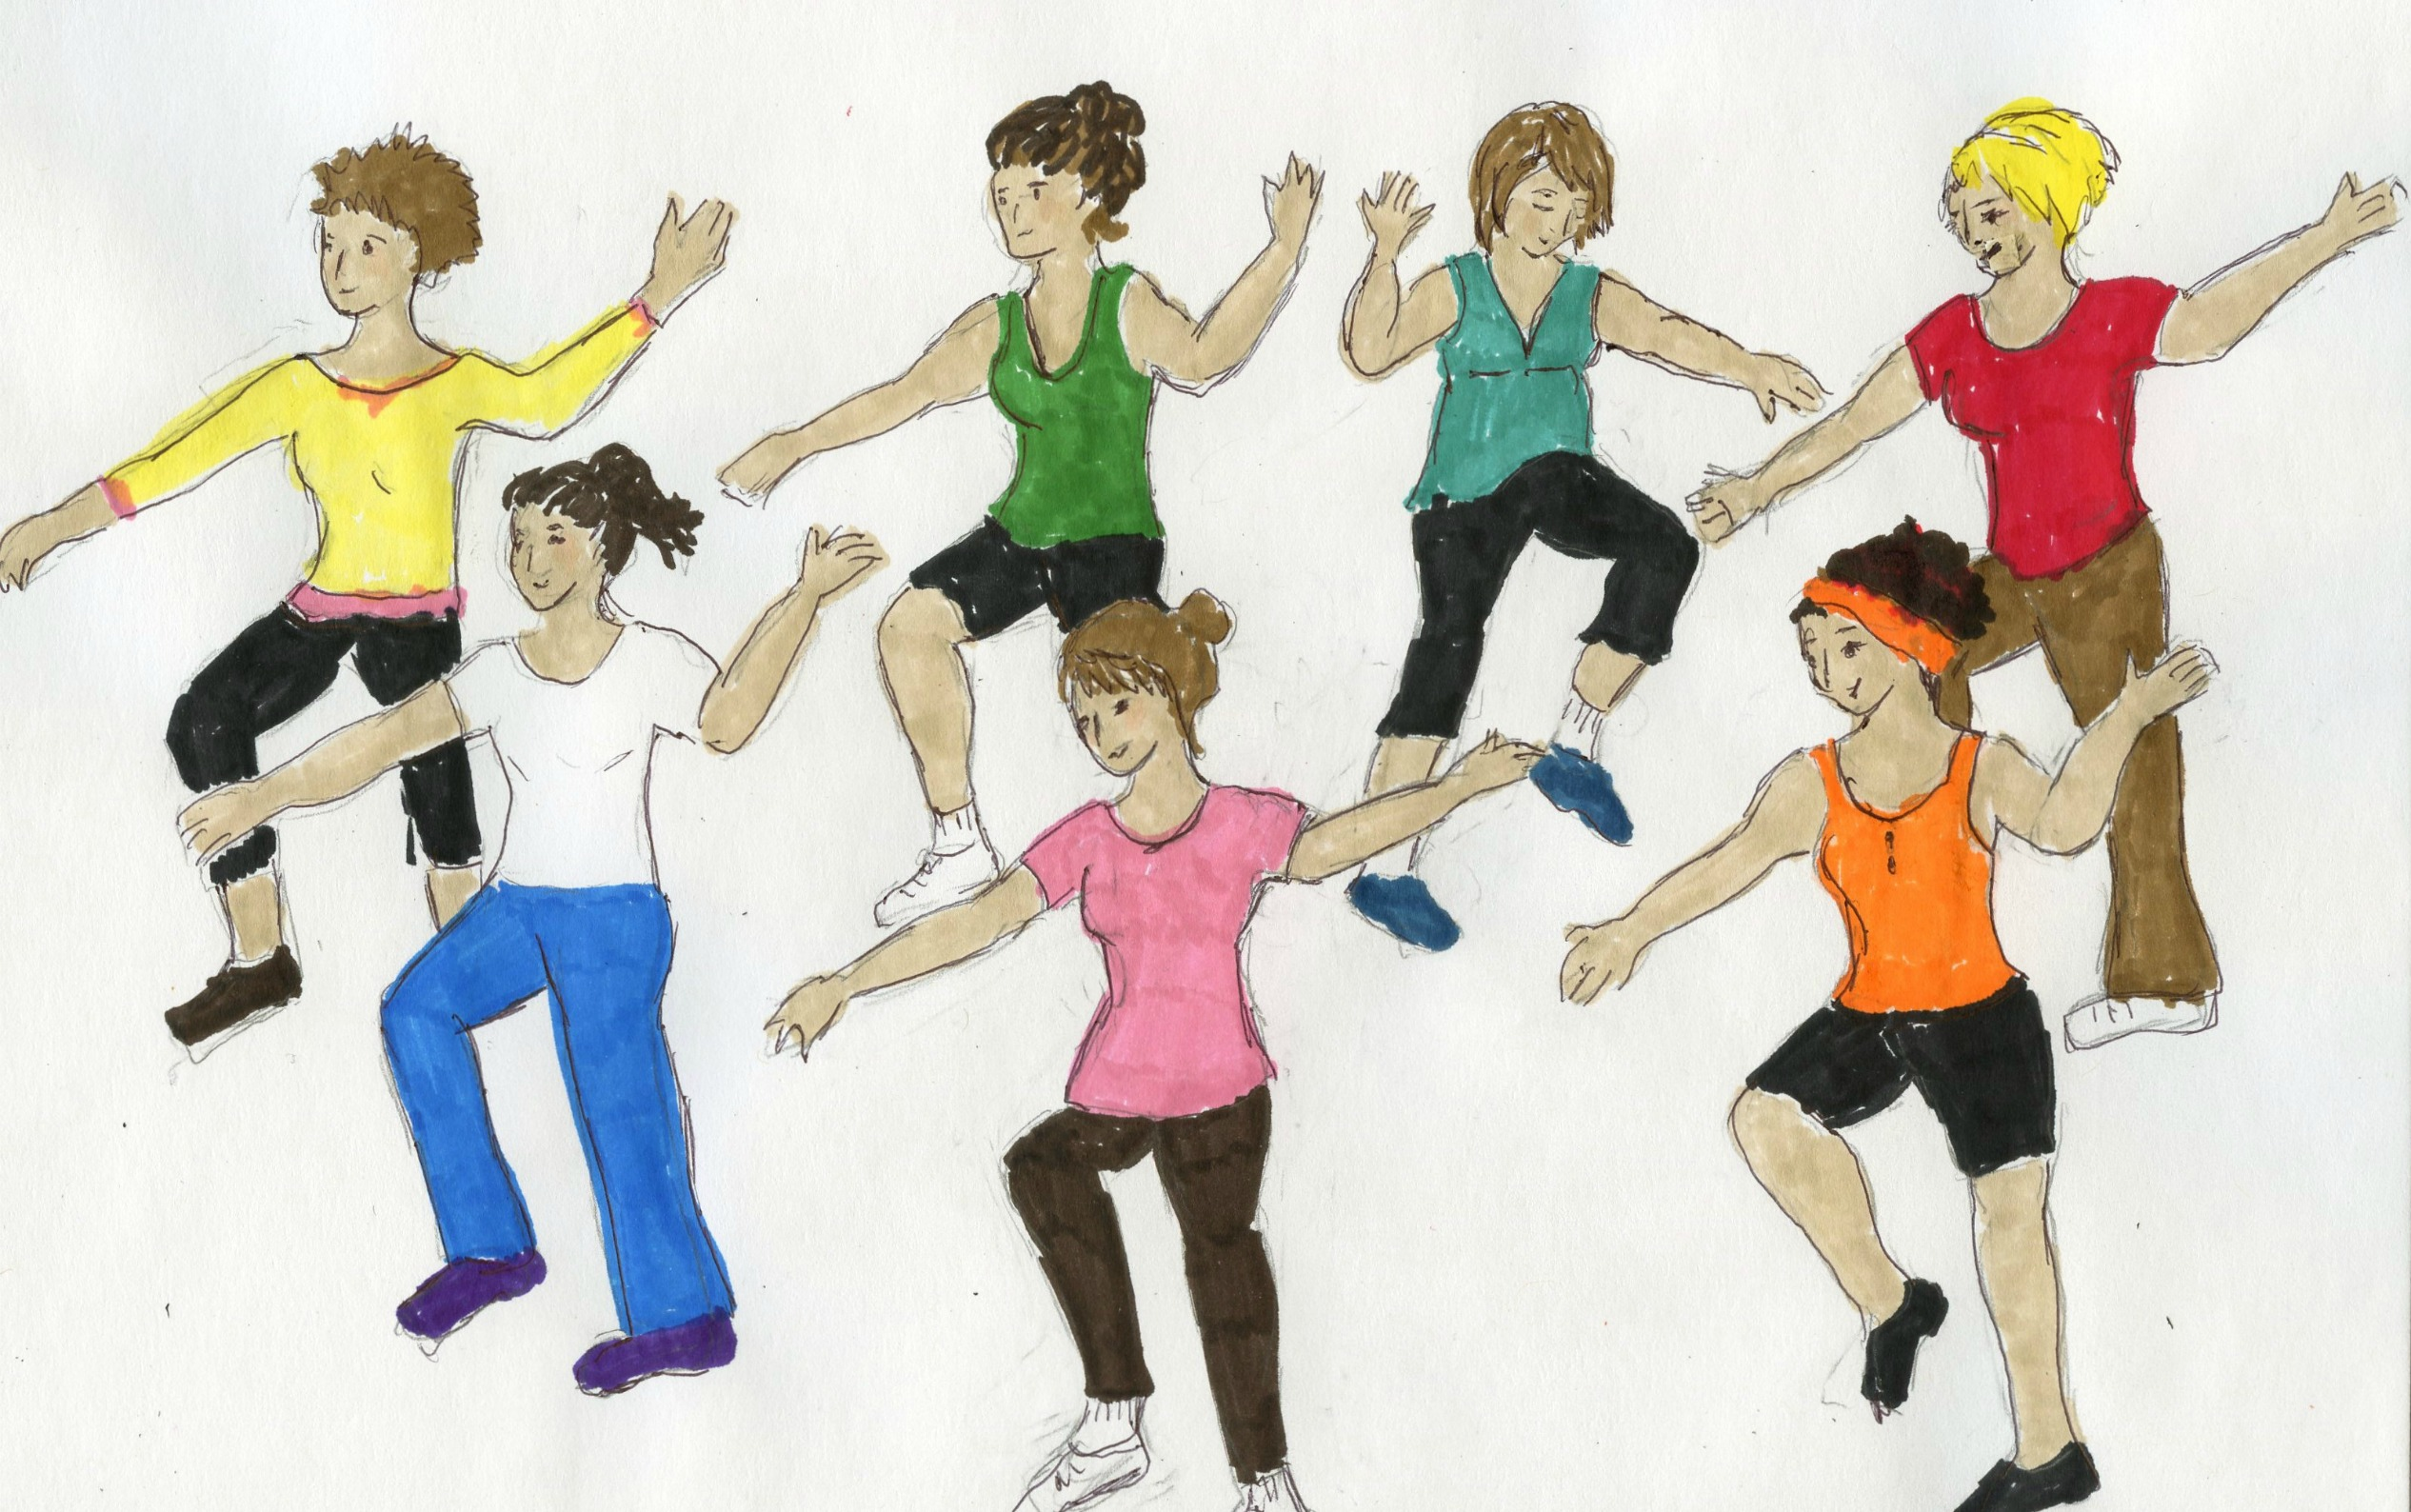 zumba images clip art - photo #20